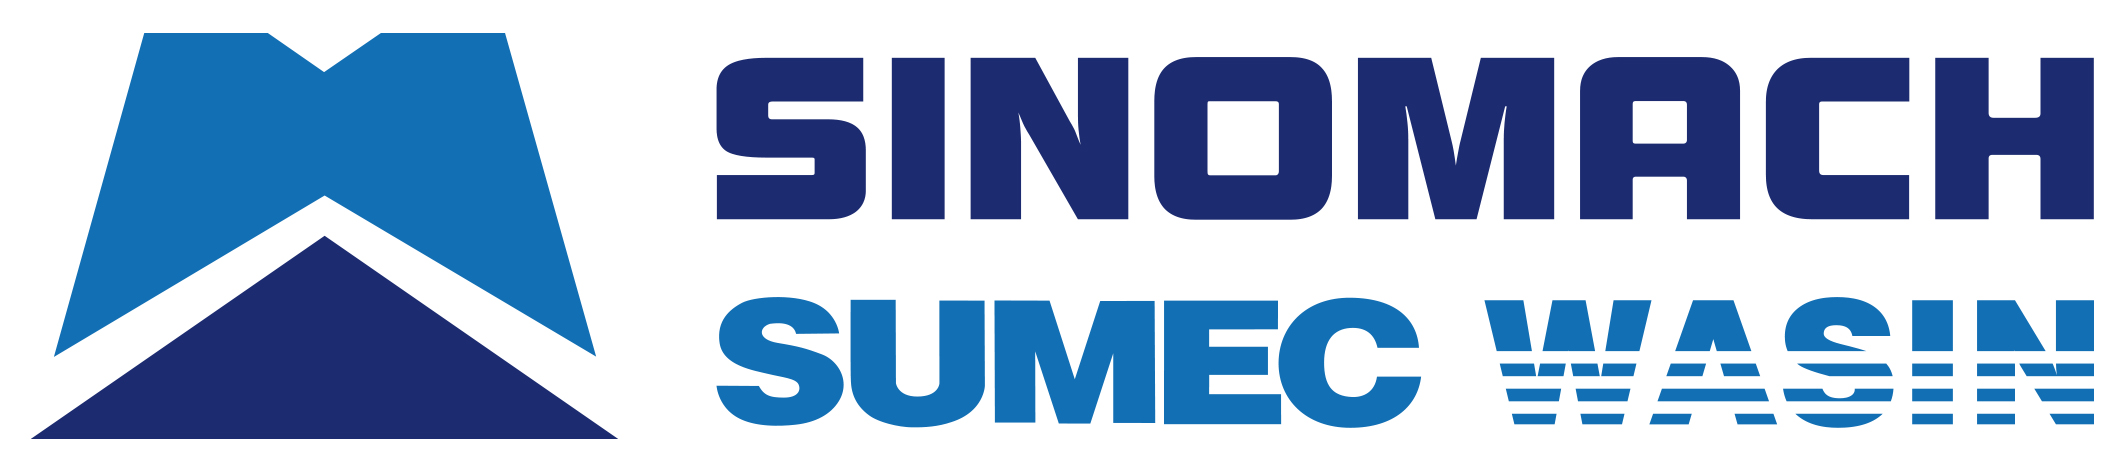 logo Sumec Wasin Telecom Co Ltd